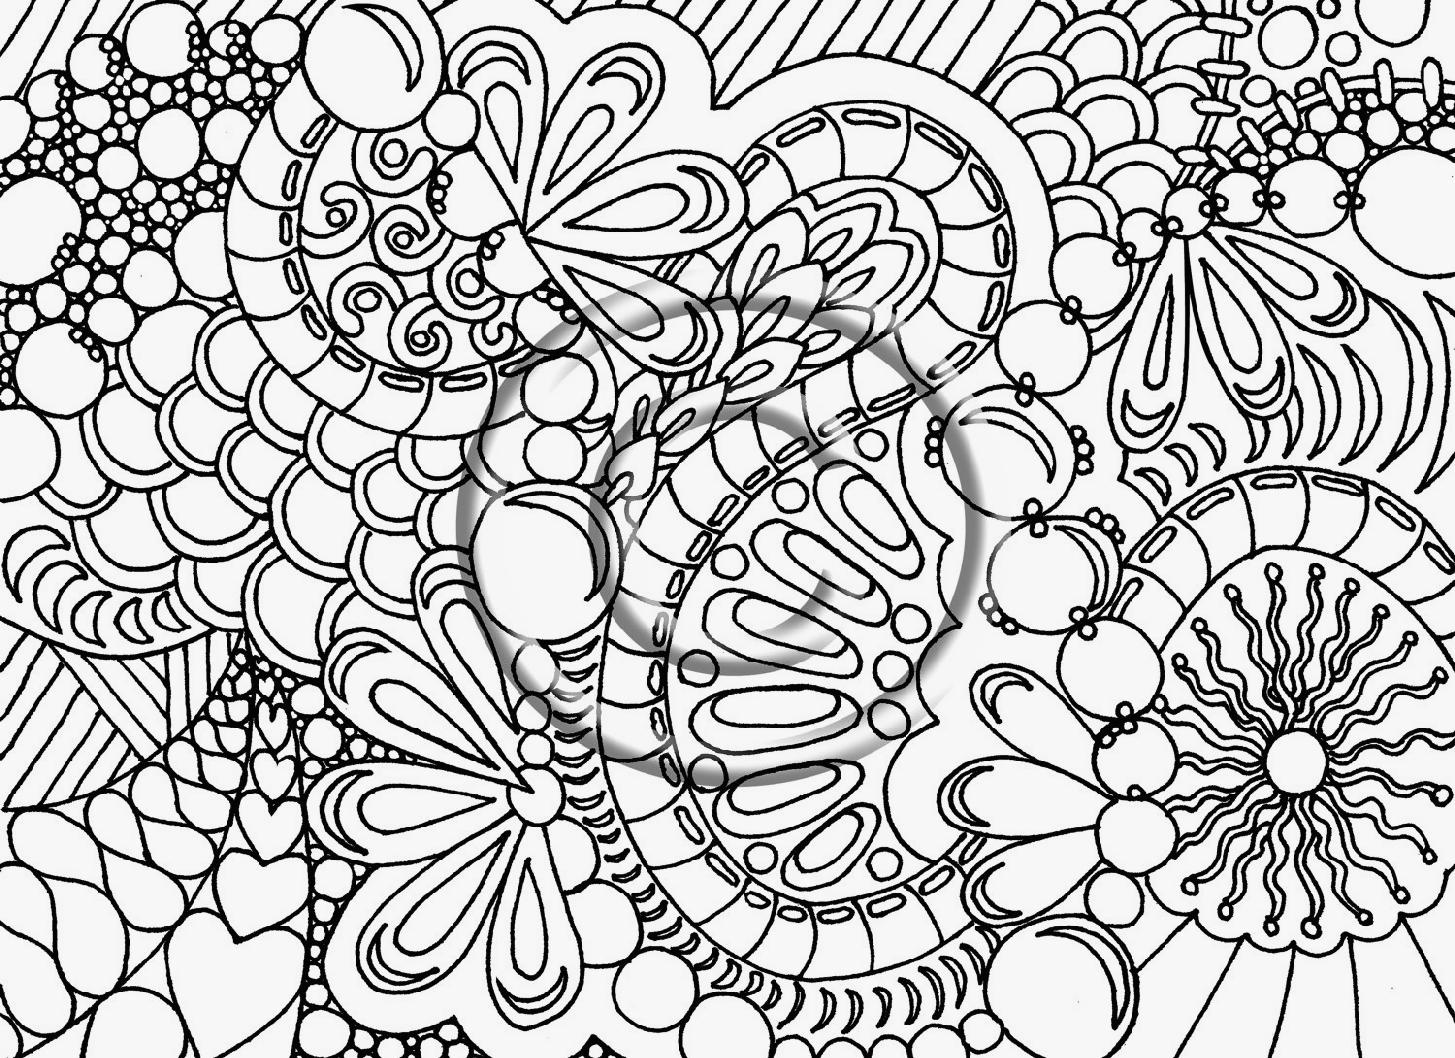 Christmas Advanced Coloring Pages At Getdrawings Com Free For